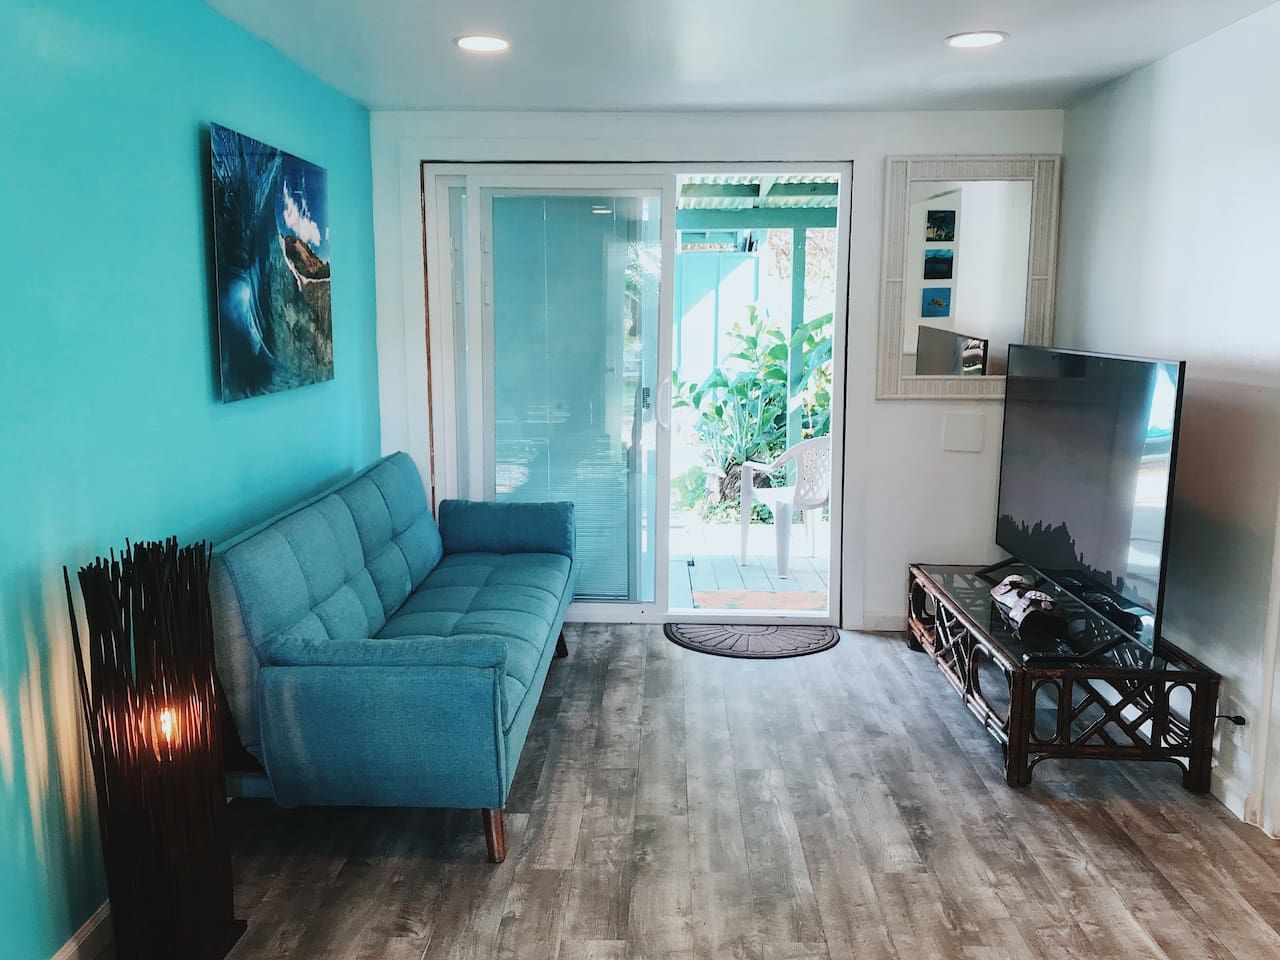 """Relax on our fold out futon and enjoy the 60"""" flat screen TV after some long days in the sun :)  Also our slider door gives you a direct path to the Garden , bathroom and kitchen area!"""